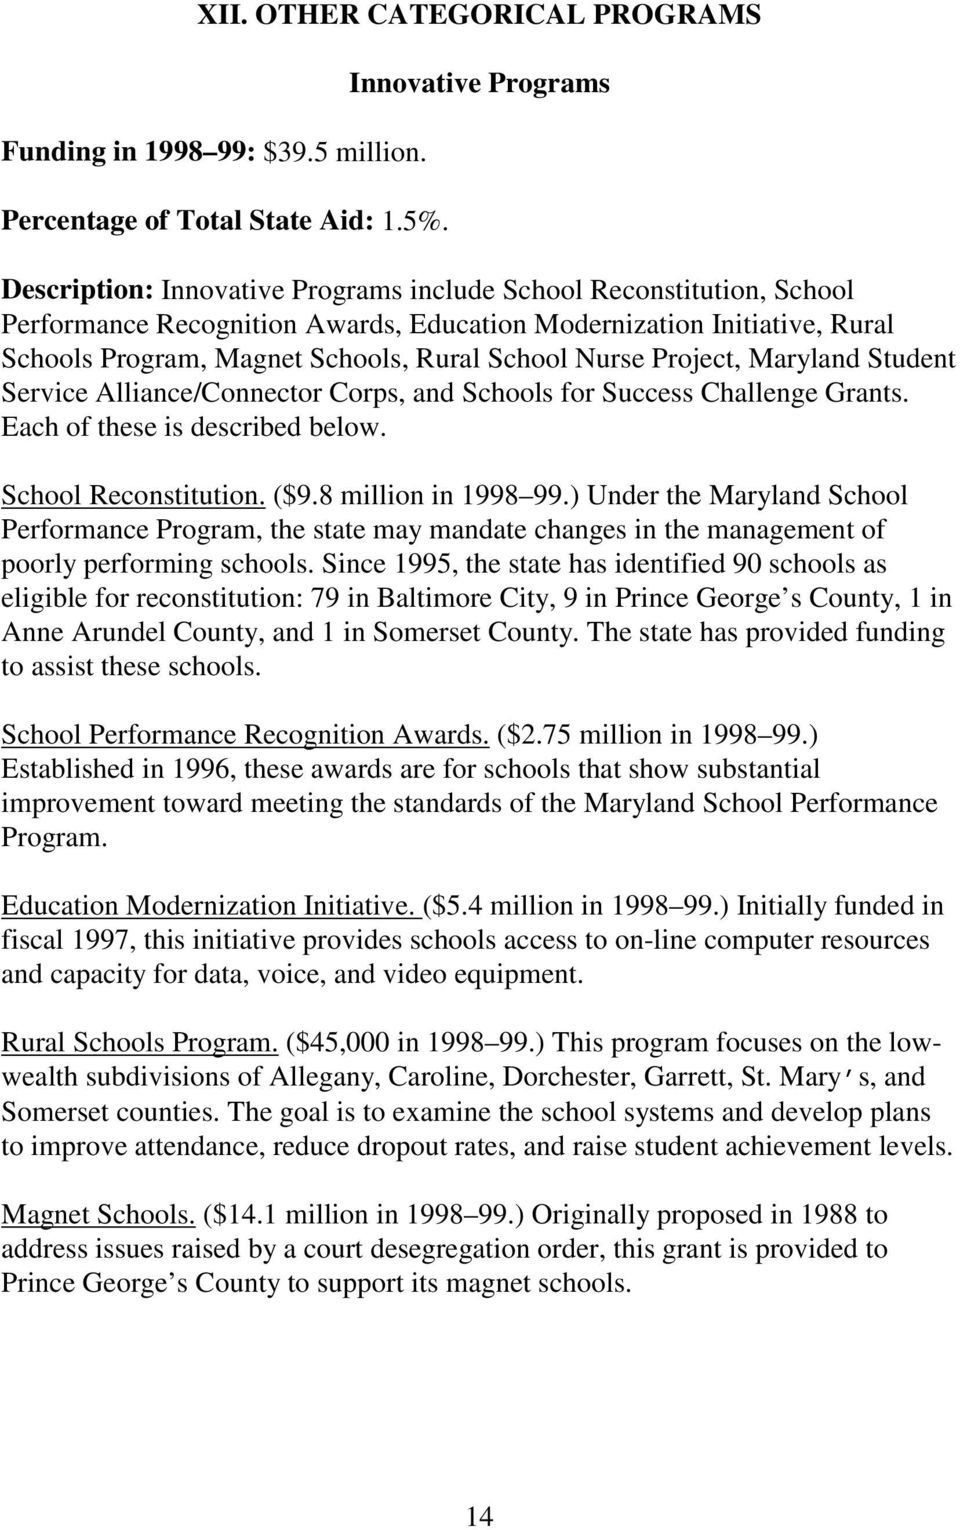 Rural School Nurse Project, Maryland Student Service Alliance/Connector Corps, and Schools for Success Challenge Grants. Each of these is described below. School Reconstitution. ($9.